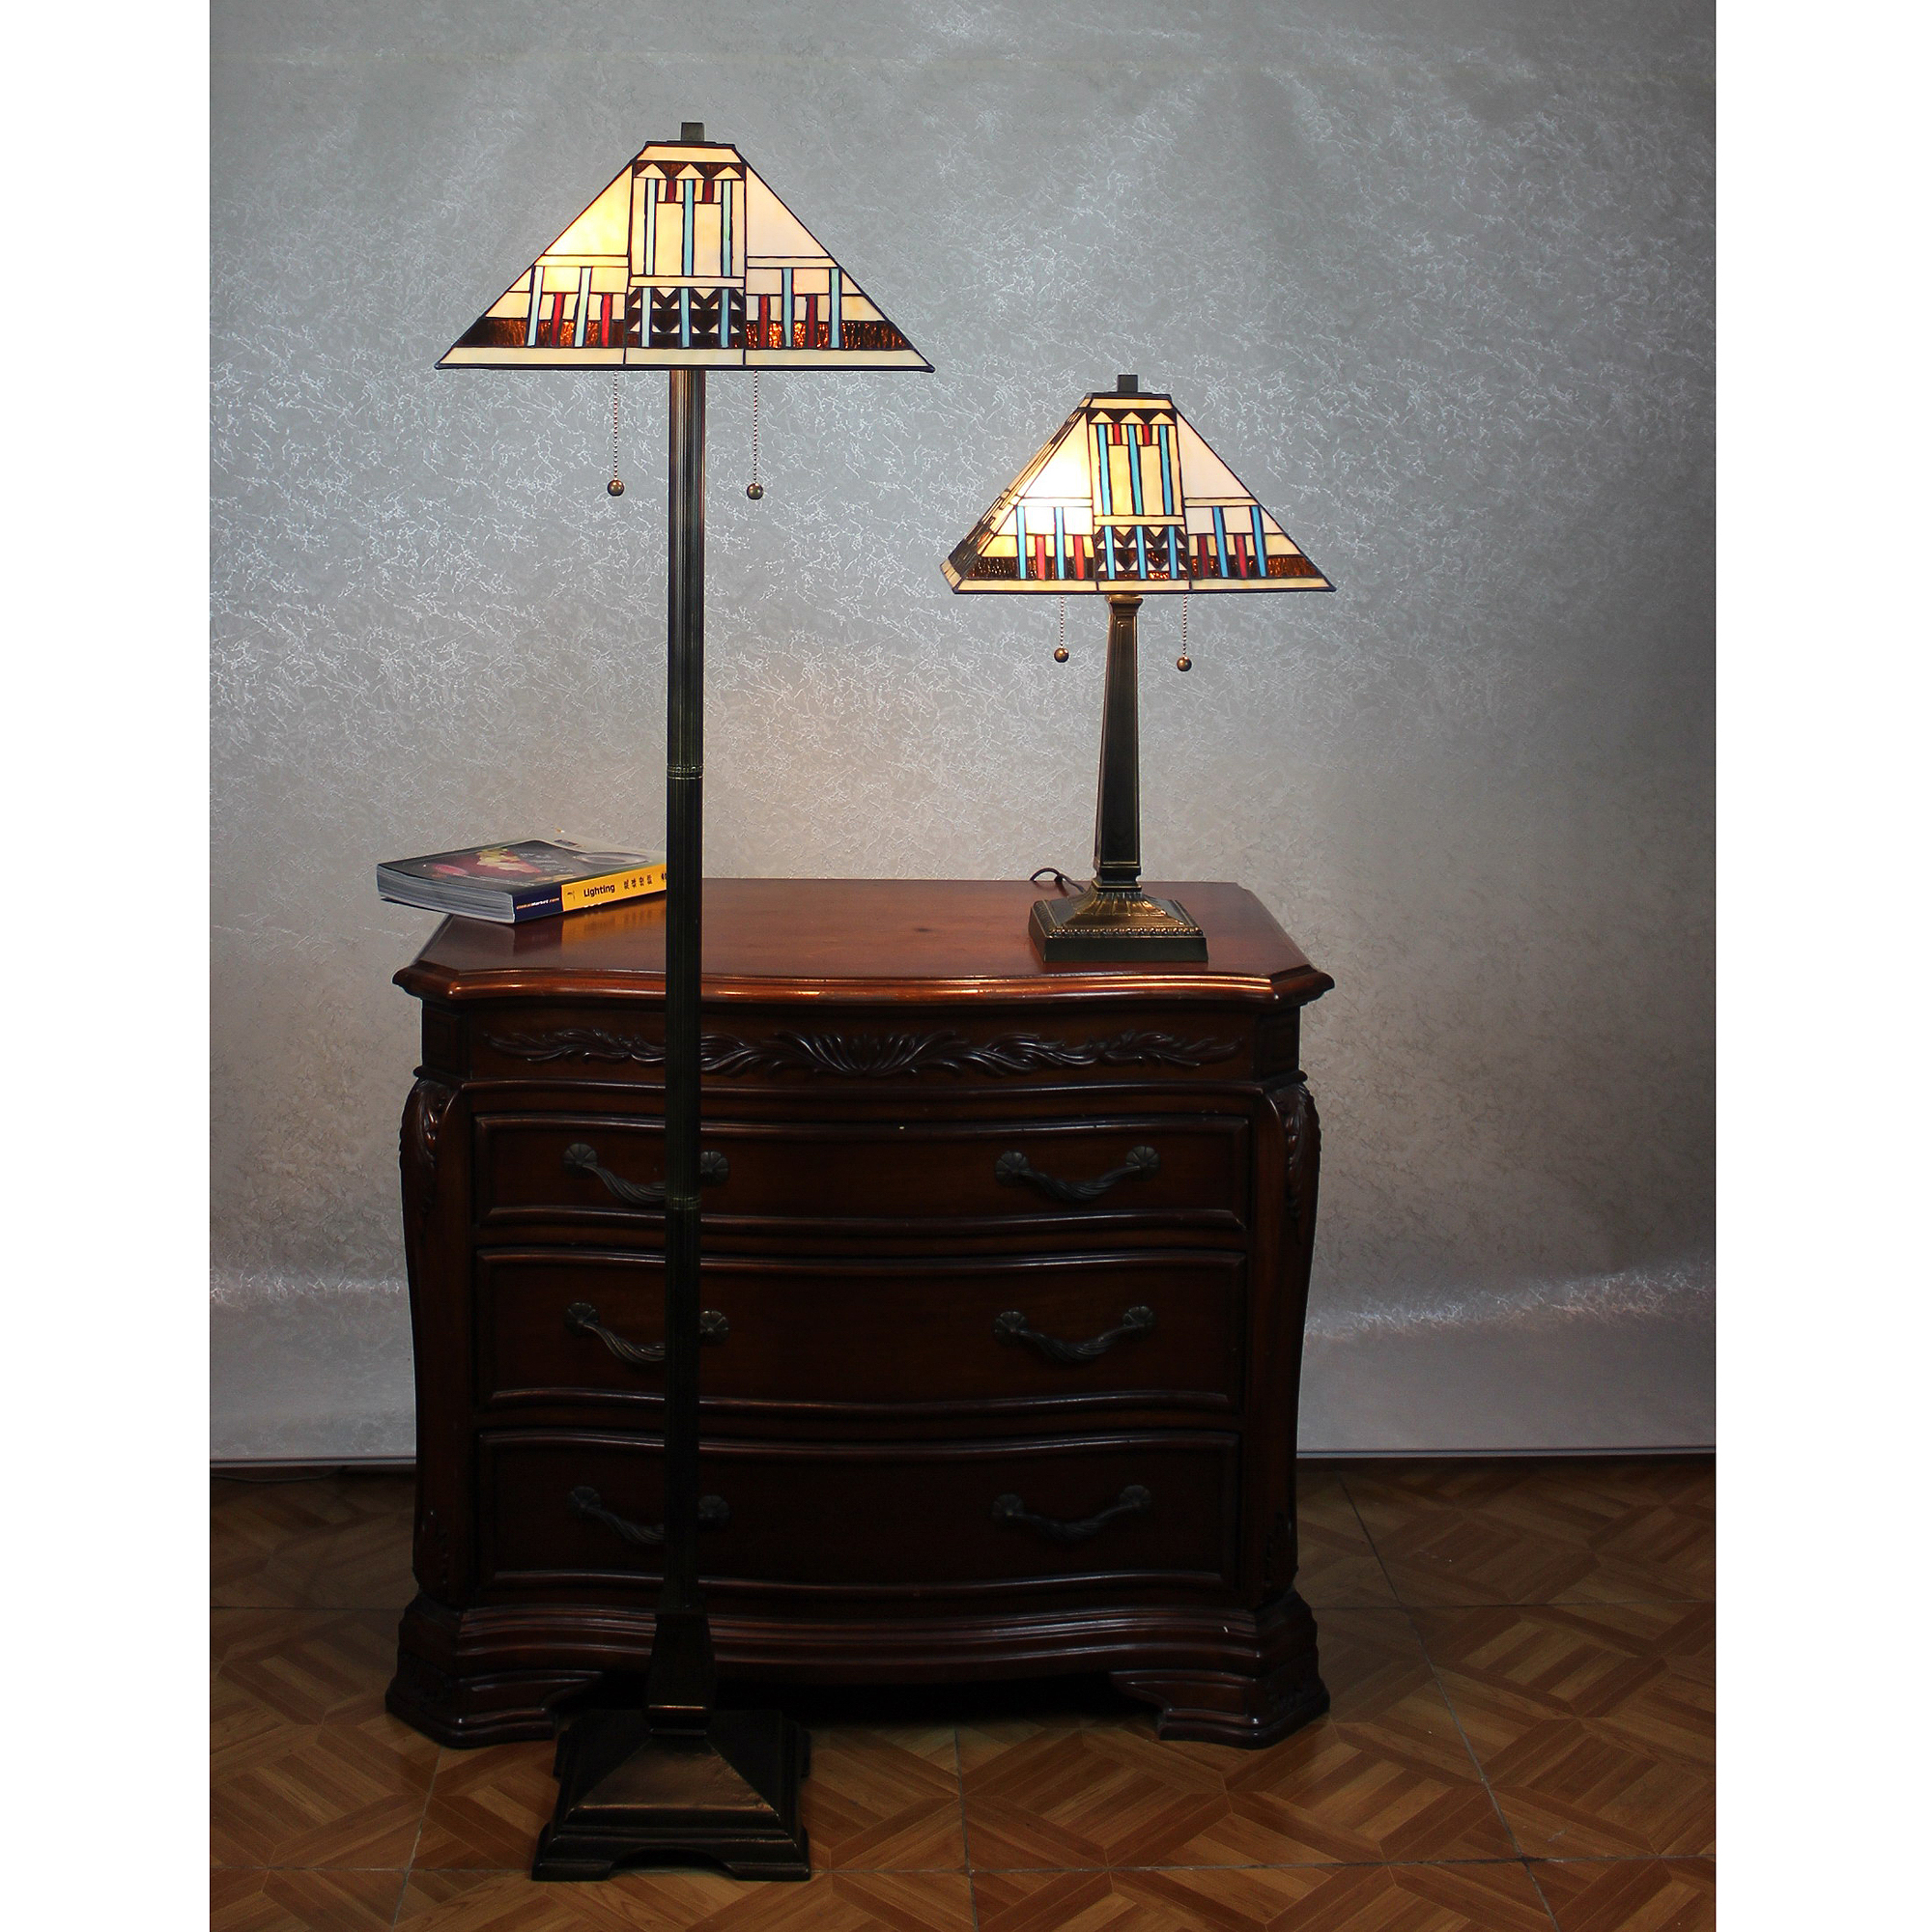 Serena d'italia Blue Mission Table and Floor Lamp Set